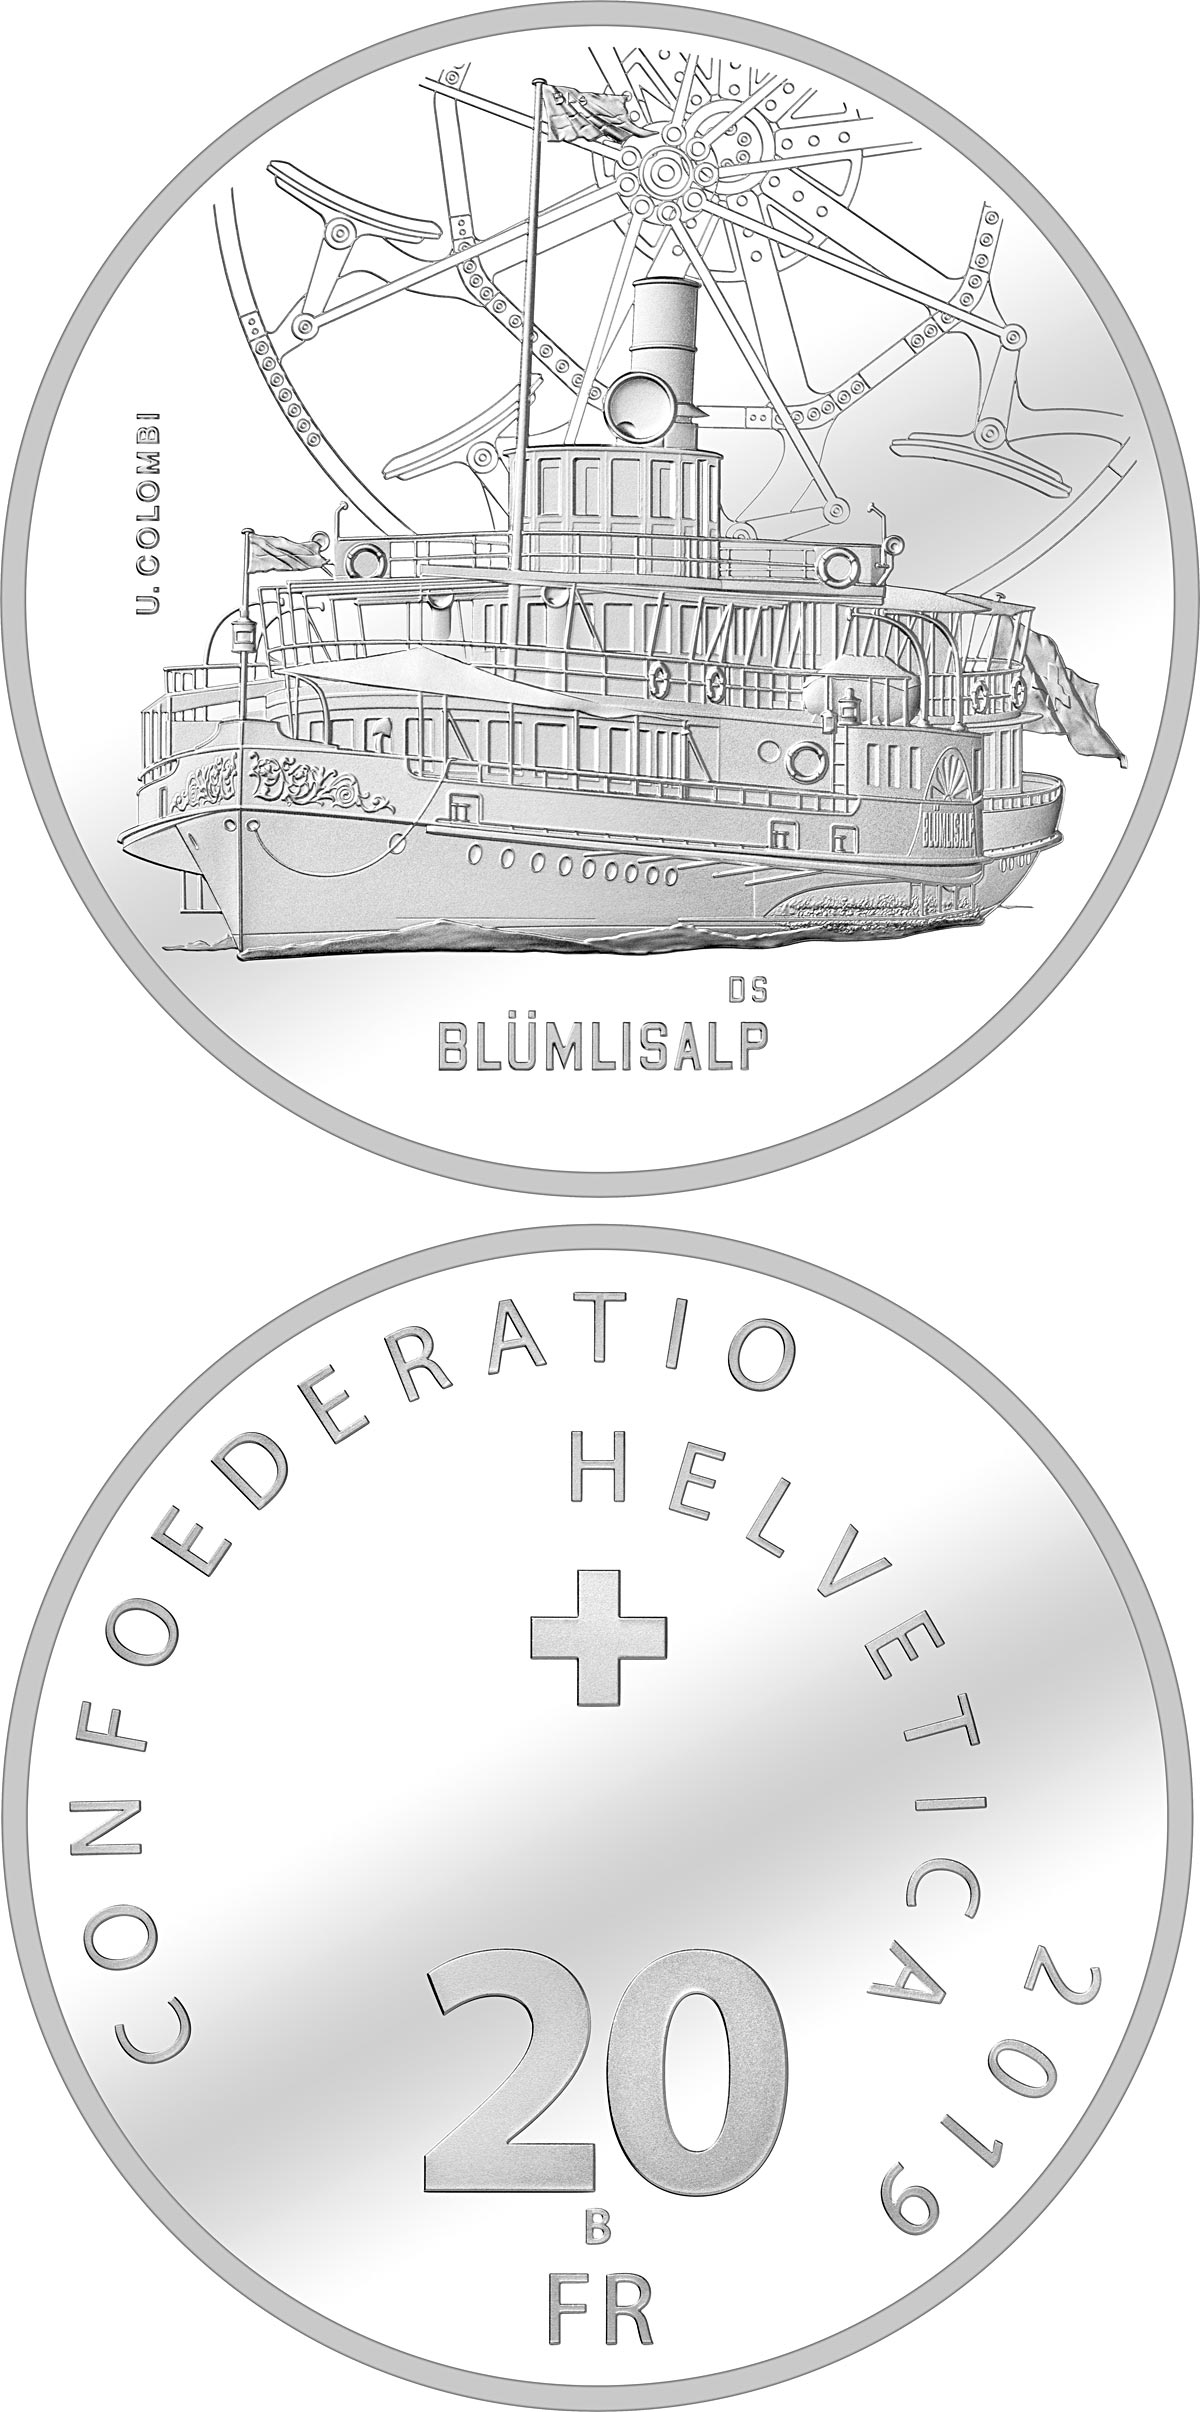 Image of 20 francs coin – Blümlisalp steamboat | Switzerland 2019.  The Silver coin is of Proof, BU quality.